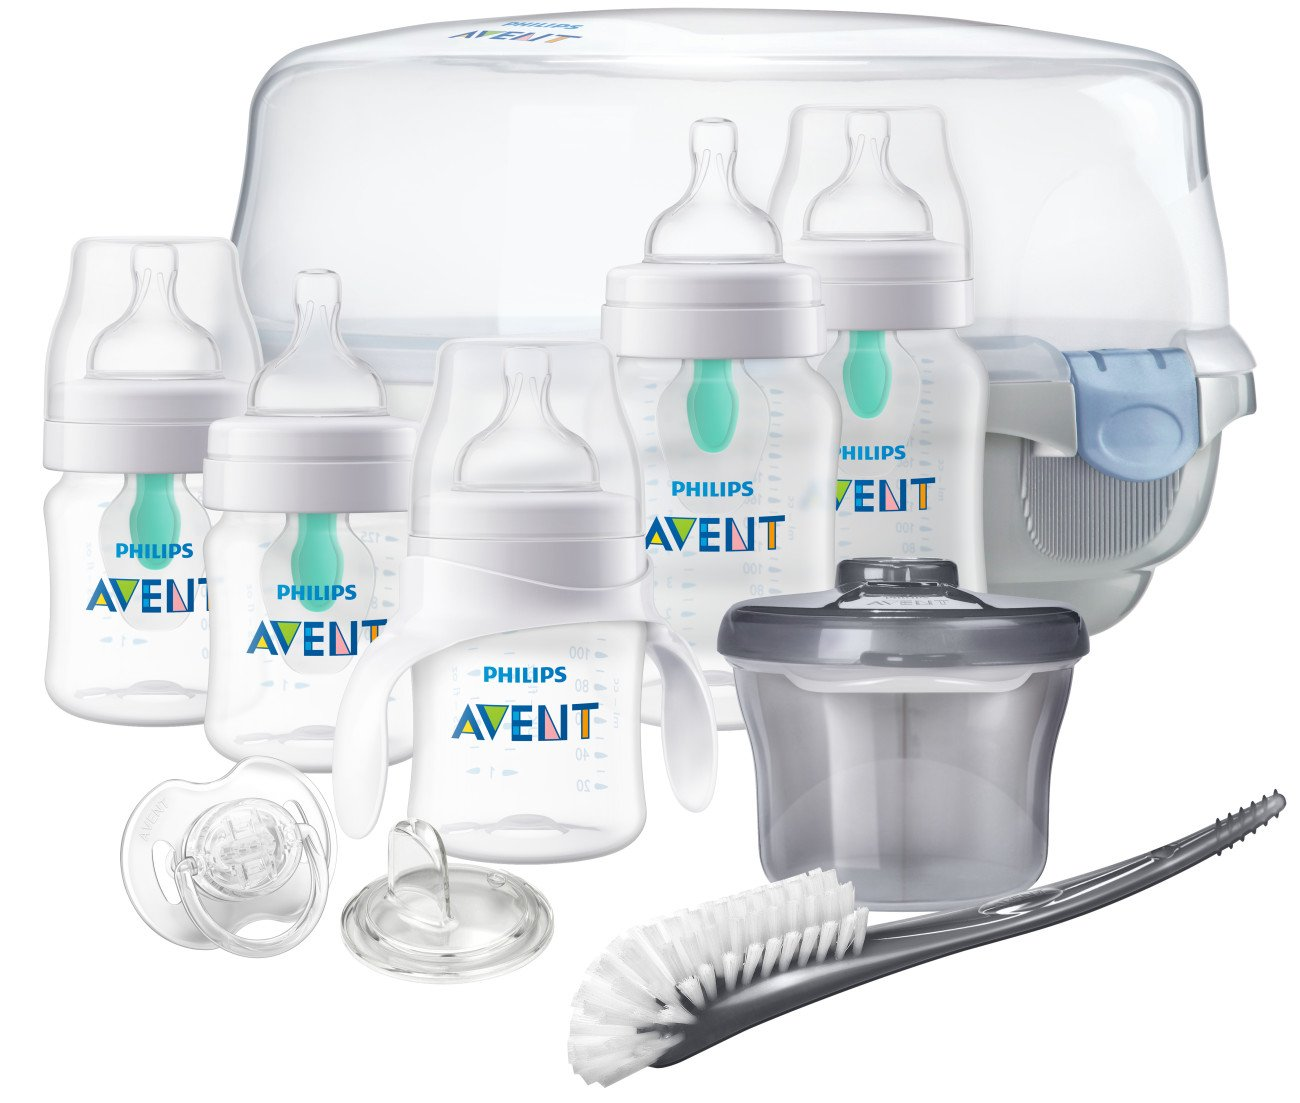 Philips Avent Anti-Colic Baby Bottle with AirFree Vent Gift Set Essentials, SCD398/02 by Philips AVENT